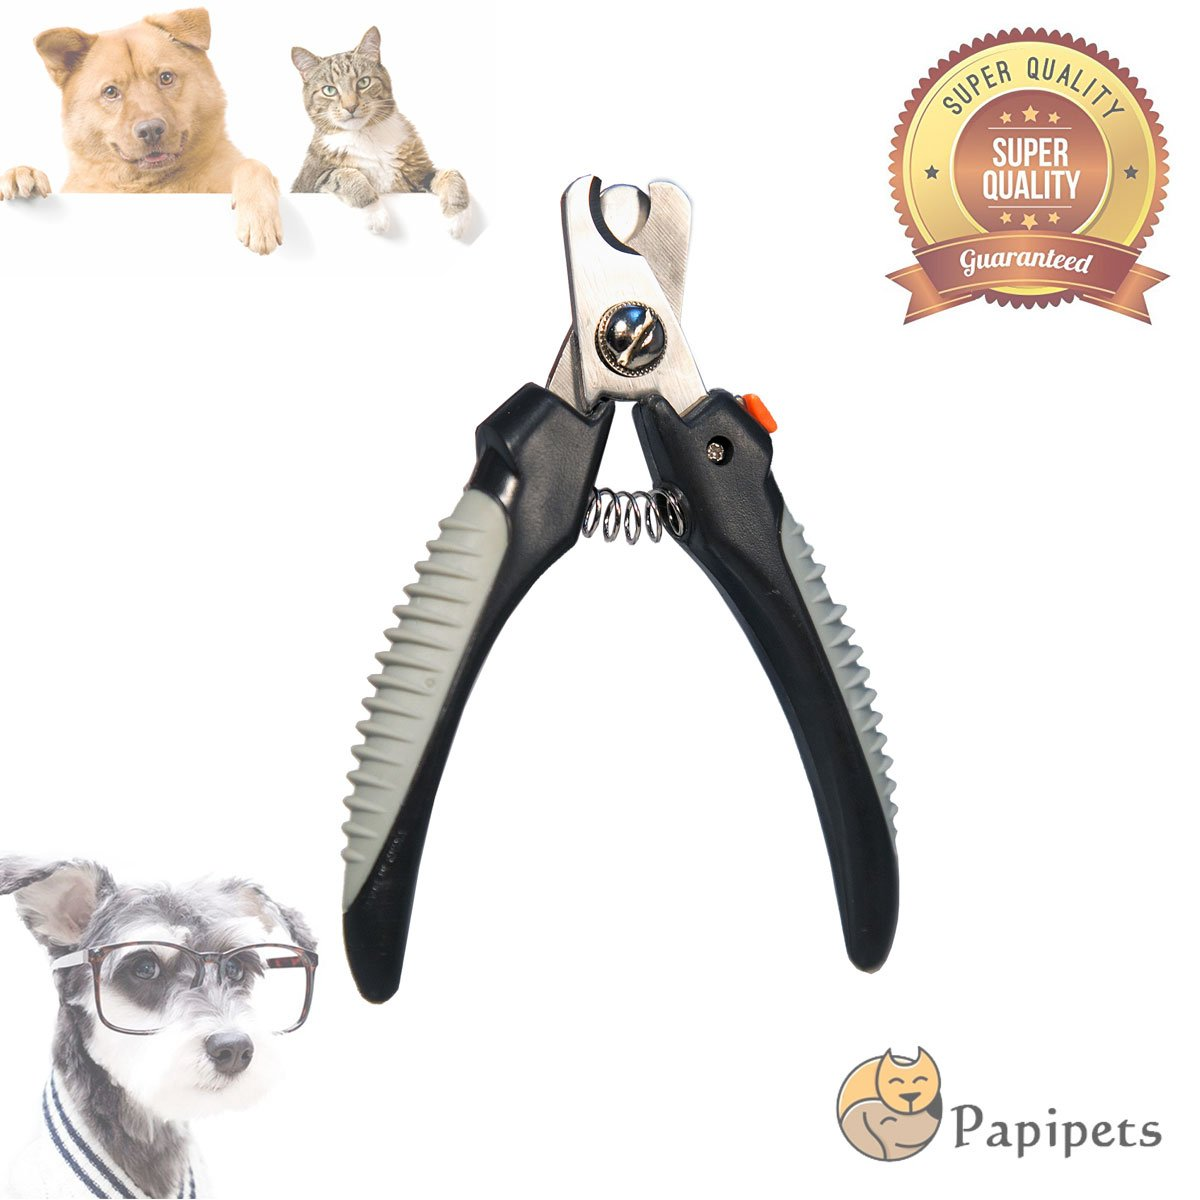 Papipets Pet Nail Clippers Adjustable Safety Guard Dog Cat Grinder Trimmer with Quality Sharp Stainless Steel Blades